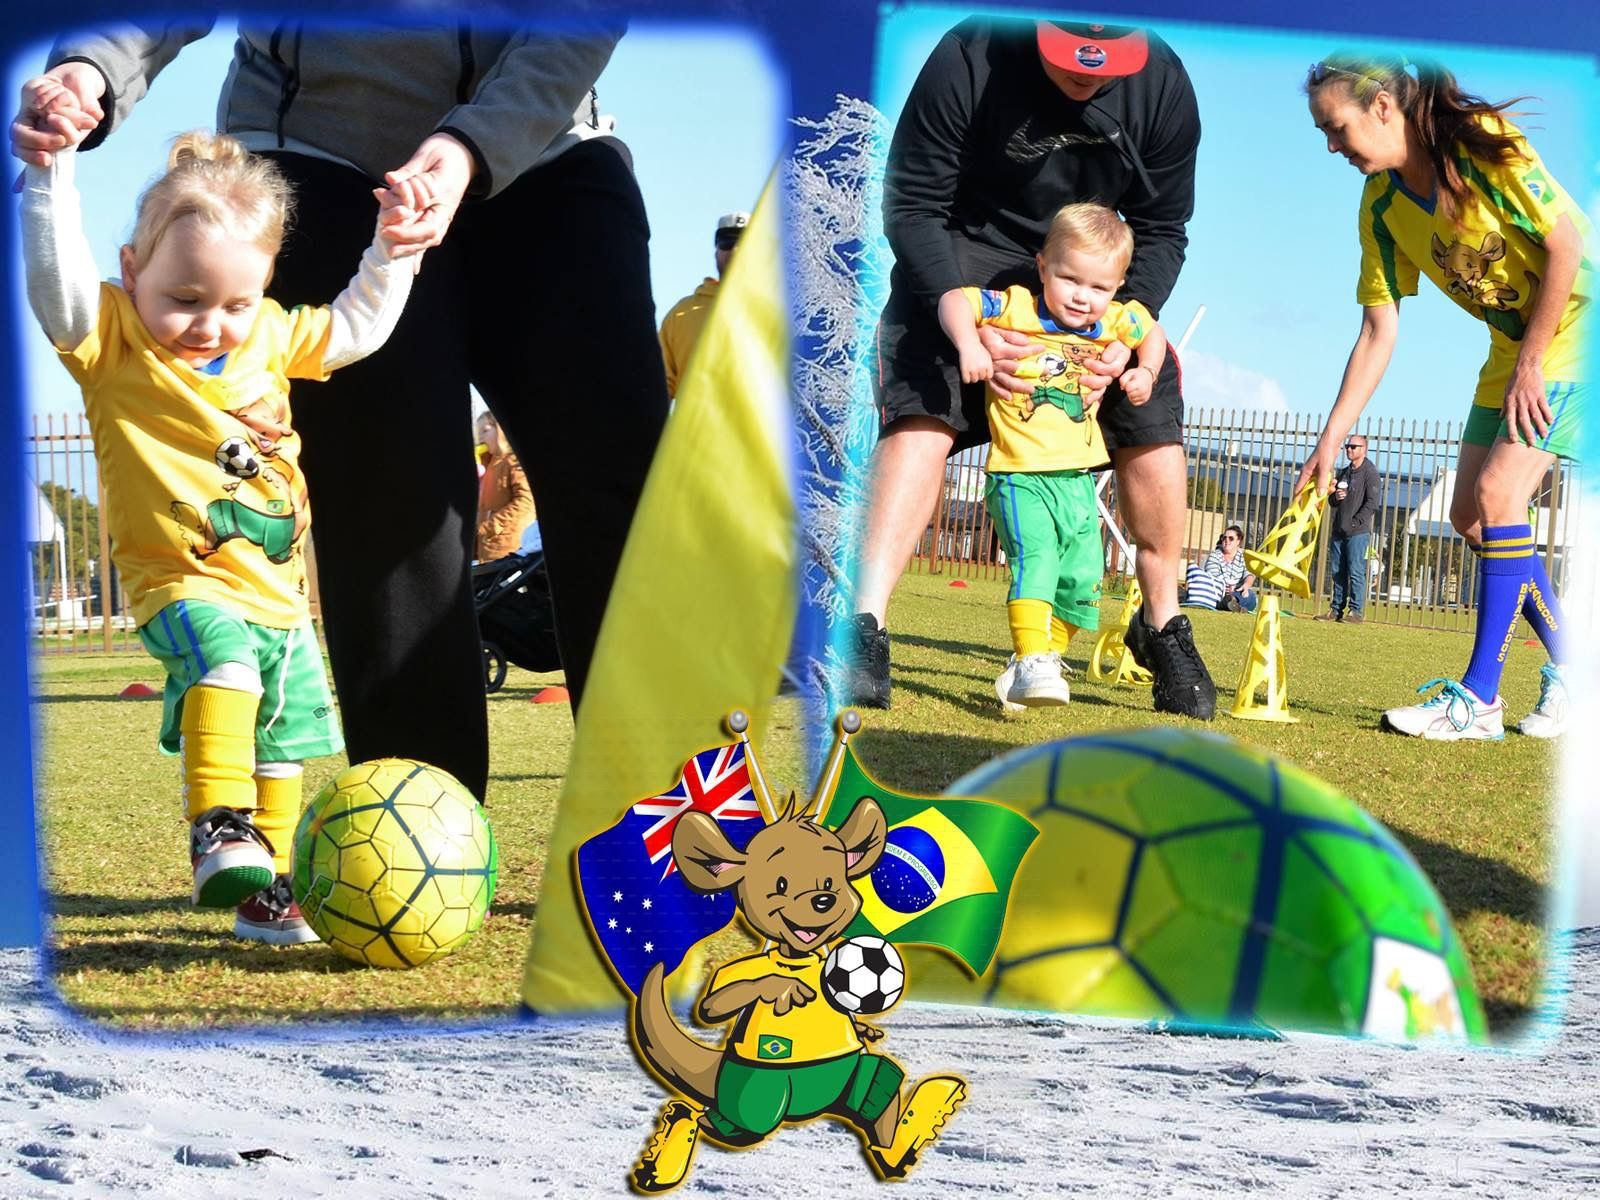 Brazroos Brazilian Soccer For Girls Boys As Young As 18 Months Old Up To 13 Years Old Term 3 Winter Soccer Is About To St 13 Year Olds Soccer 18 Month Old